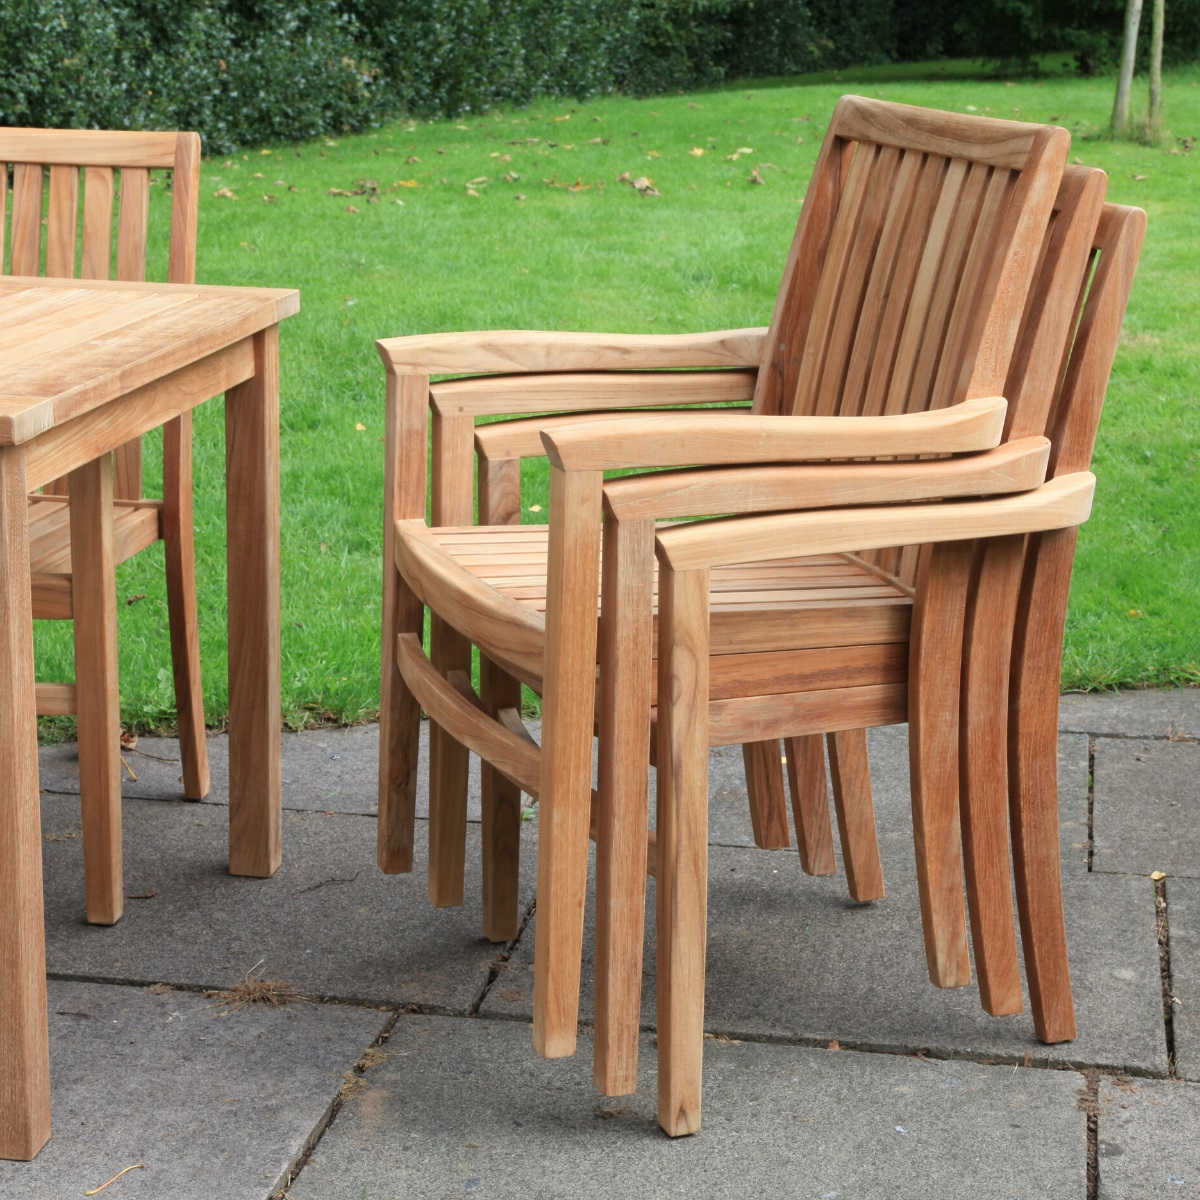 A stack of teak garden chairs on a patio